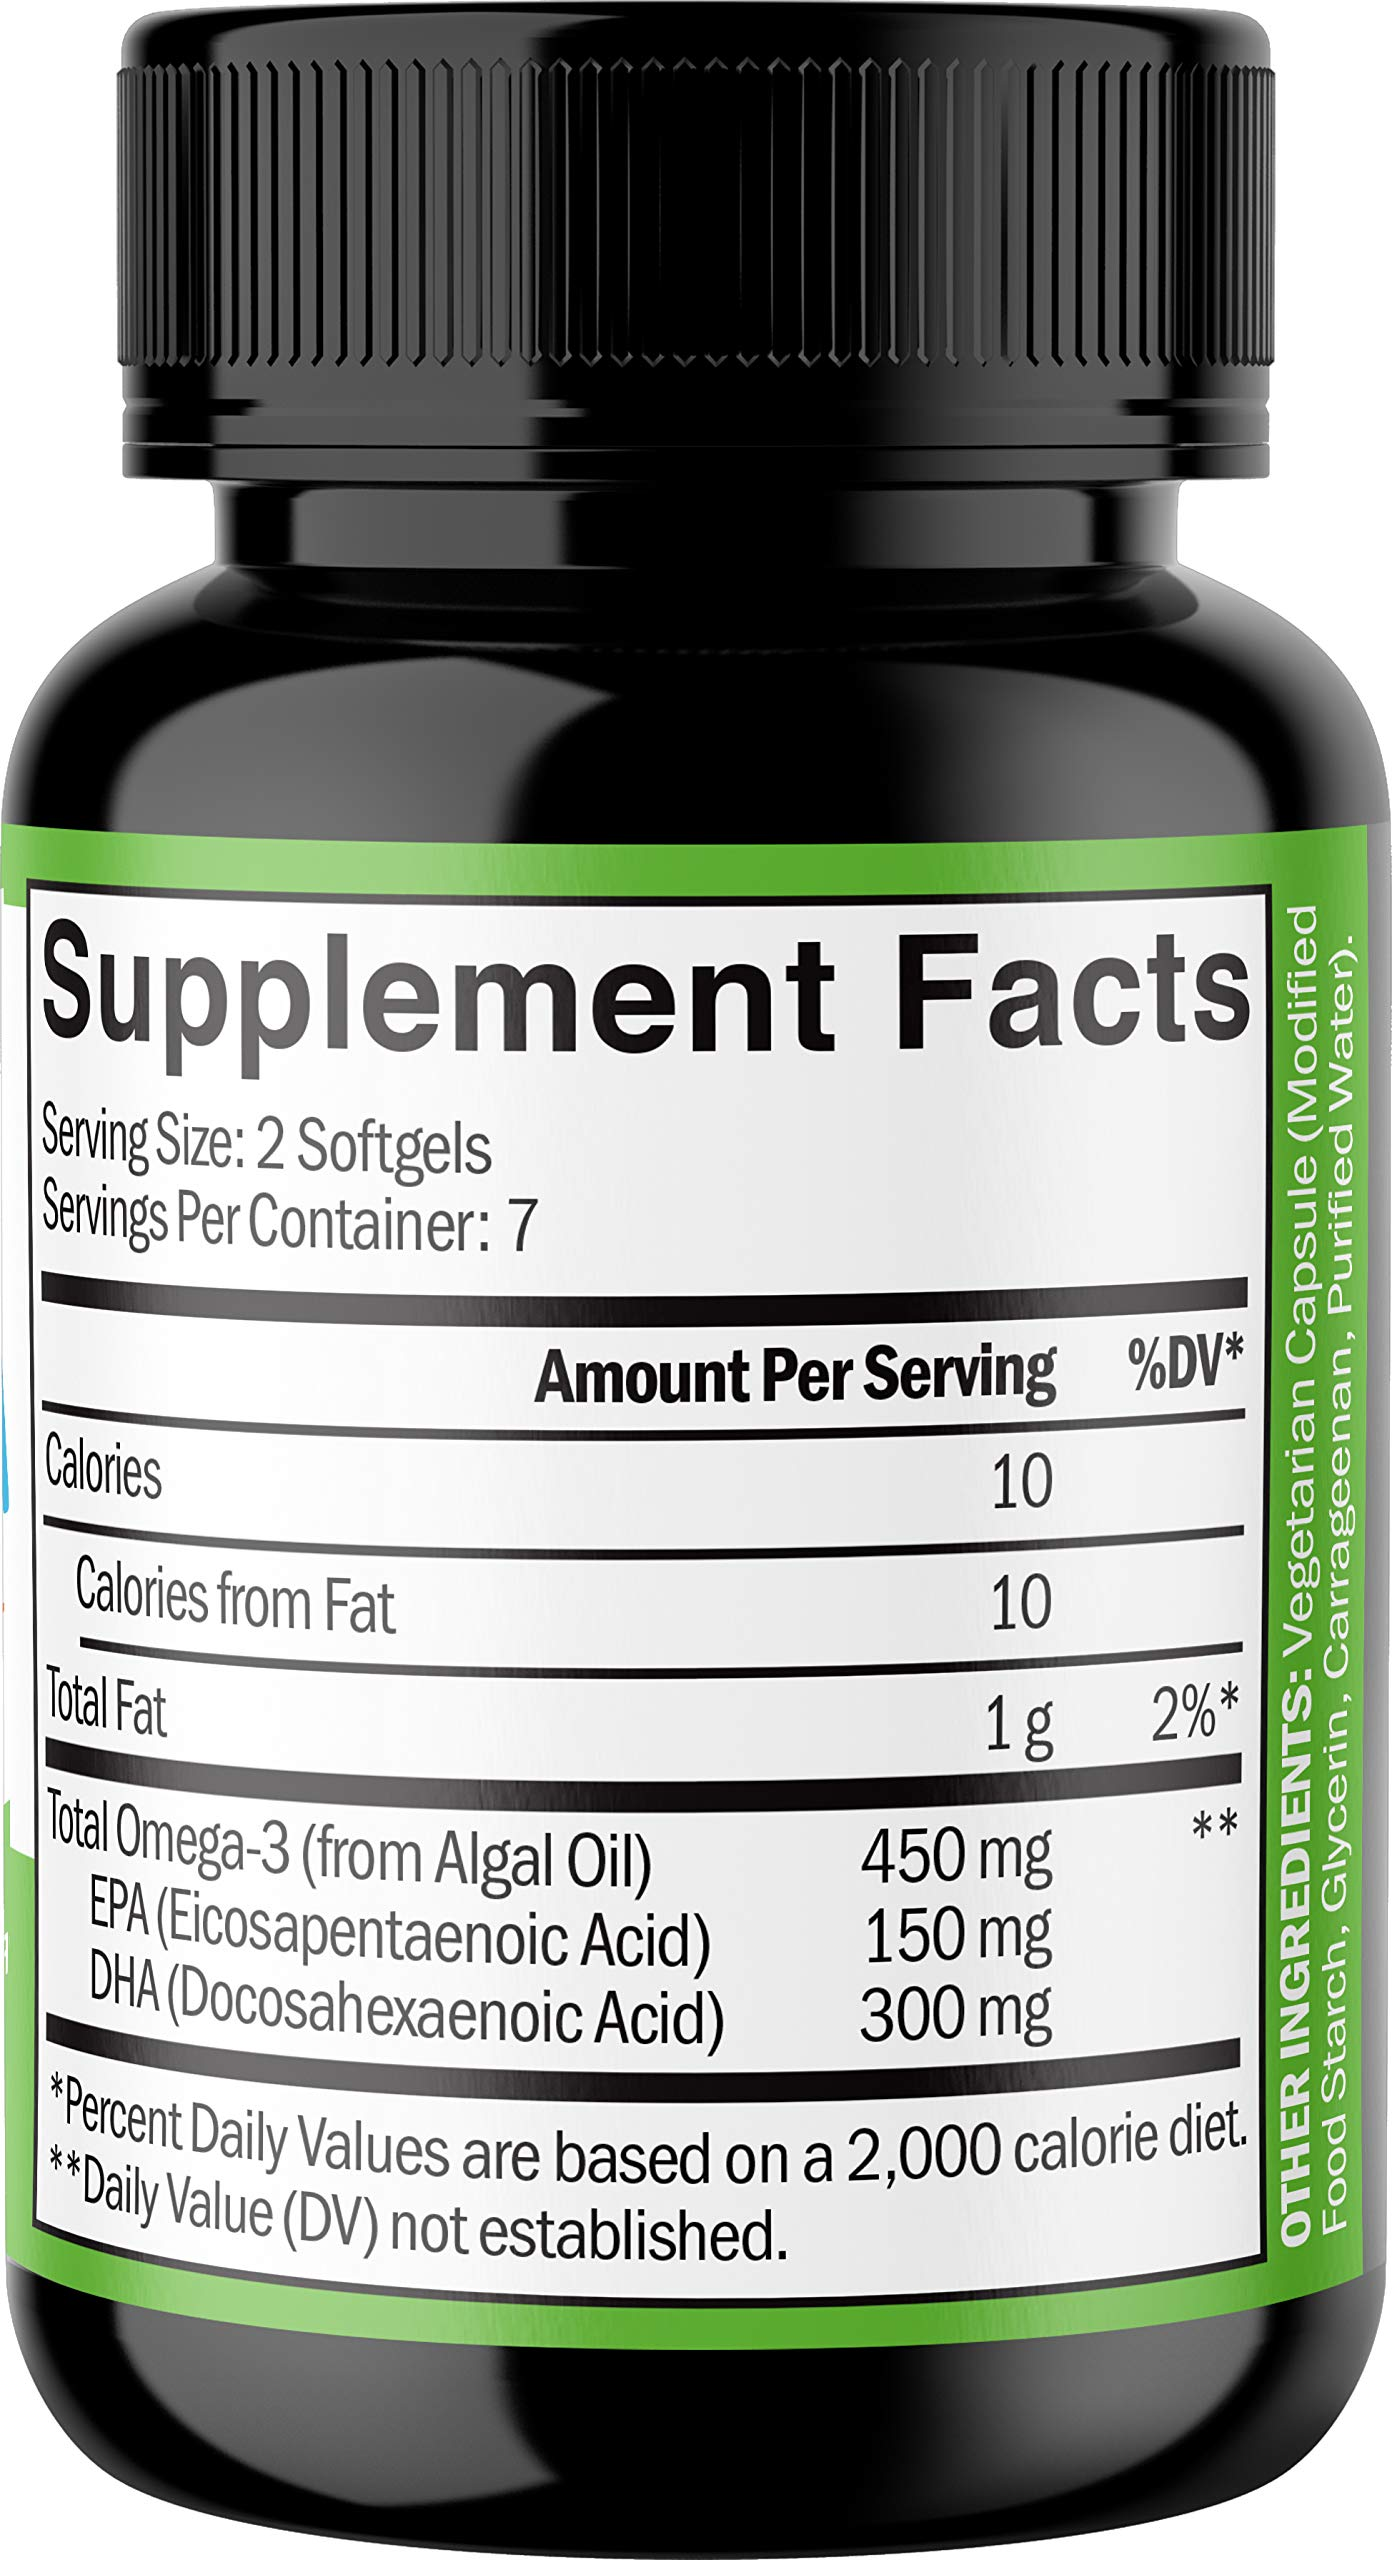 Vegan Omega 3 Supplement - Marine Algal Source of EPA & DHA Fatty Acids - for Joint Support & Immune System - Heart & Skin + Brain Health Booster - Fish Oil Free Formula for Men & Women - 14 Softgels by Zenwise Health (Image #2)